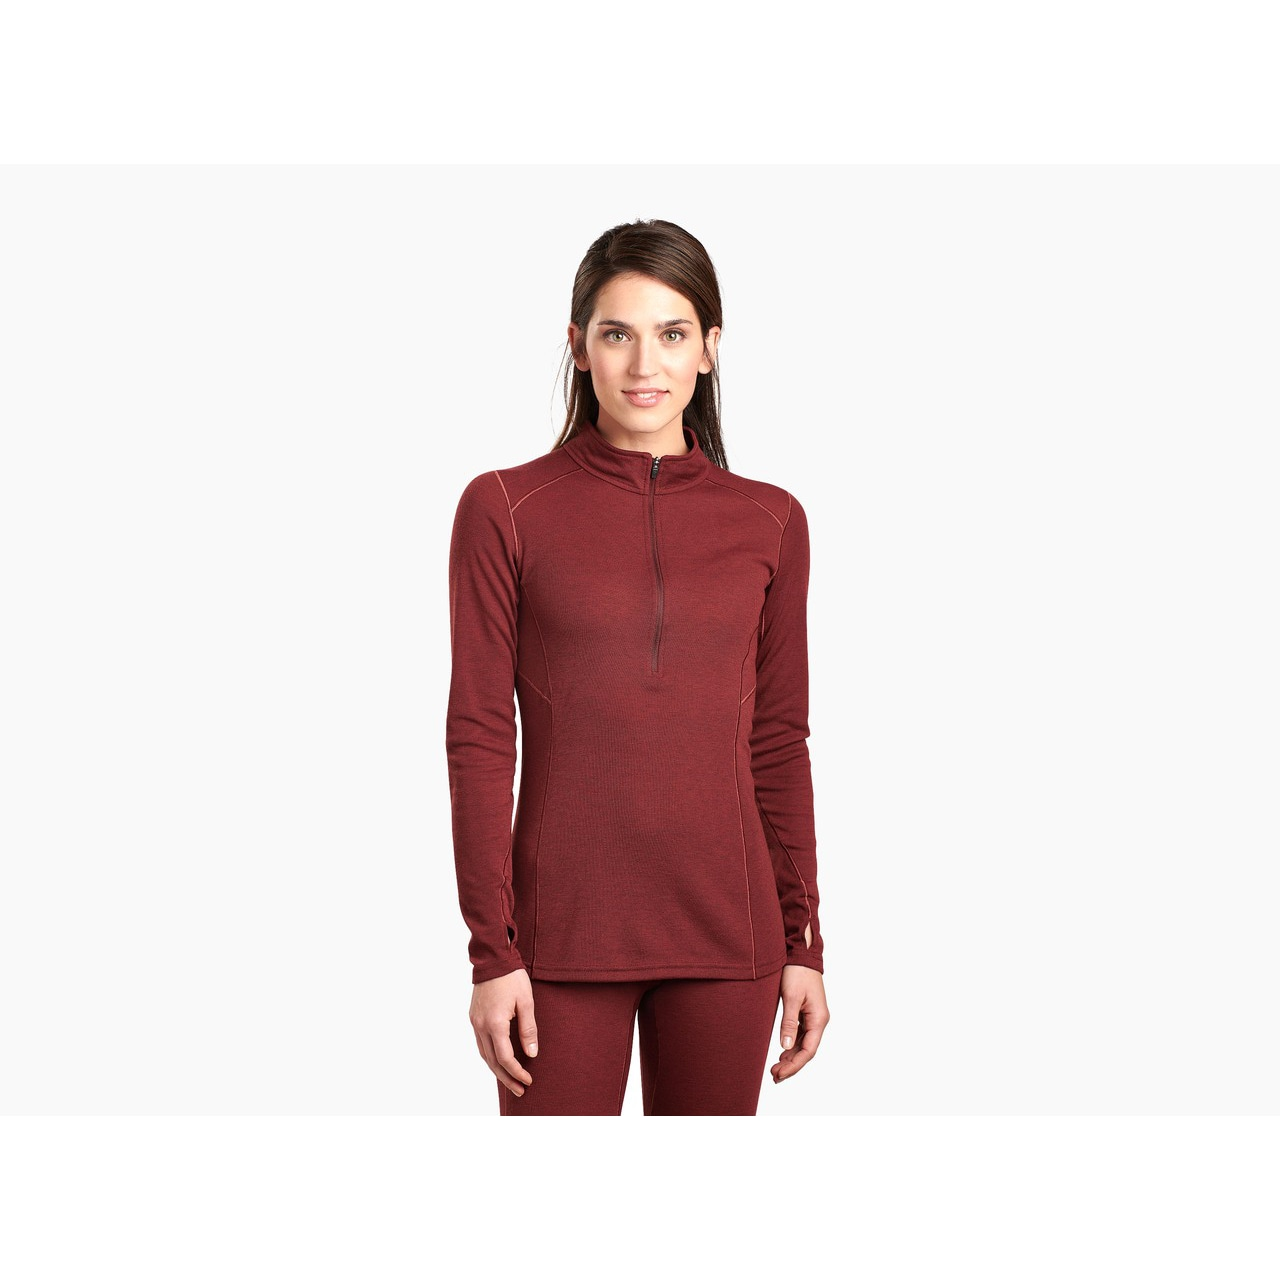 Akkomplice Zip Neck - Women's